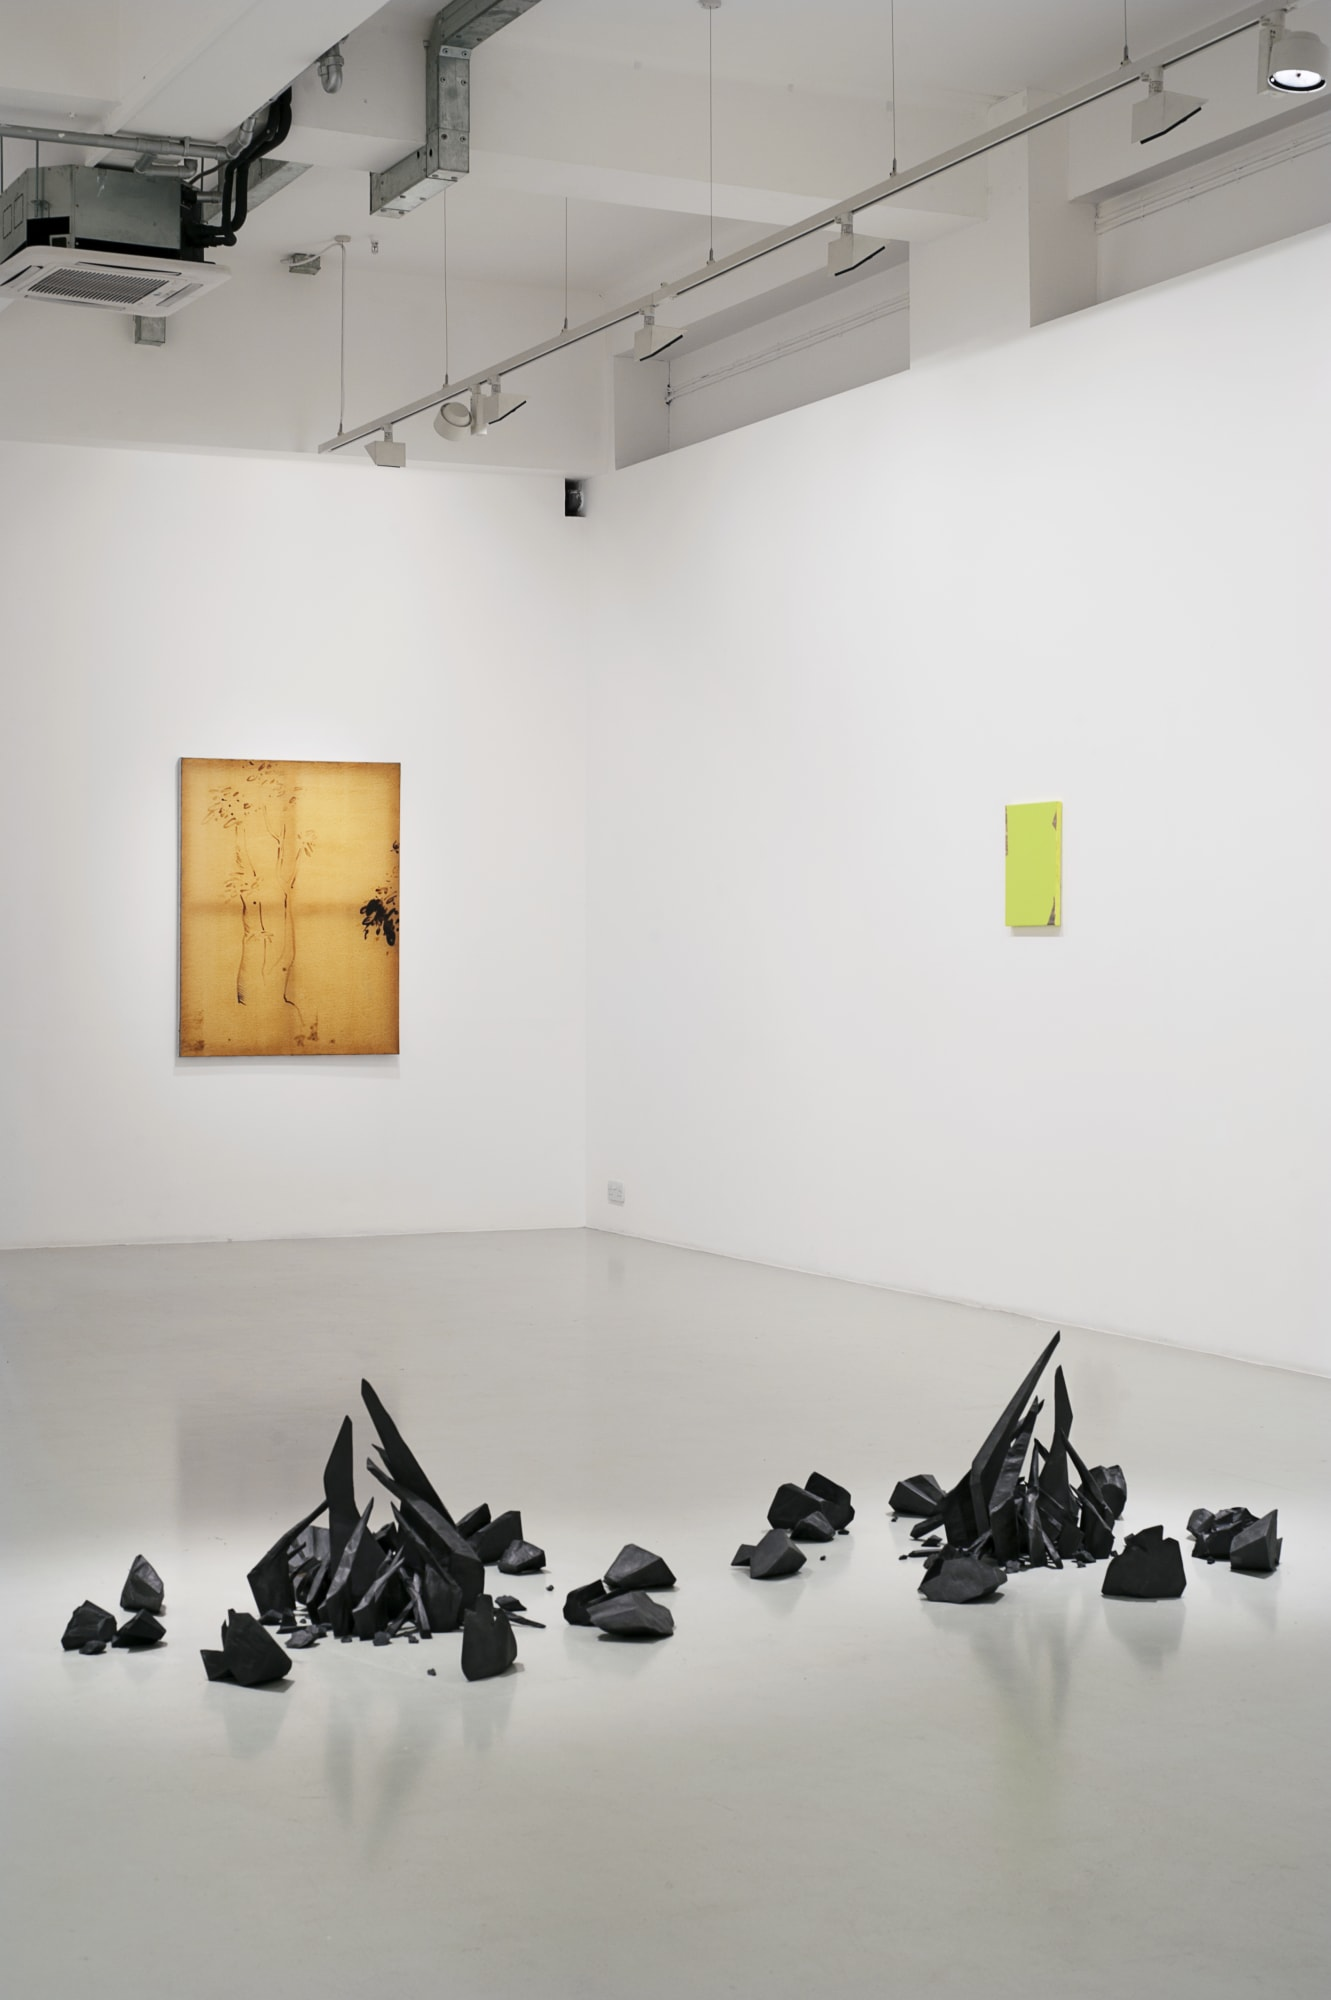 Group Exhibition Laurence Kavanagh, Simon Mathers, Mary Ramsden, Damien Roach, and Cally Spooner